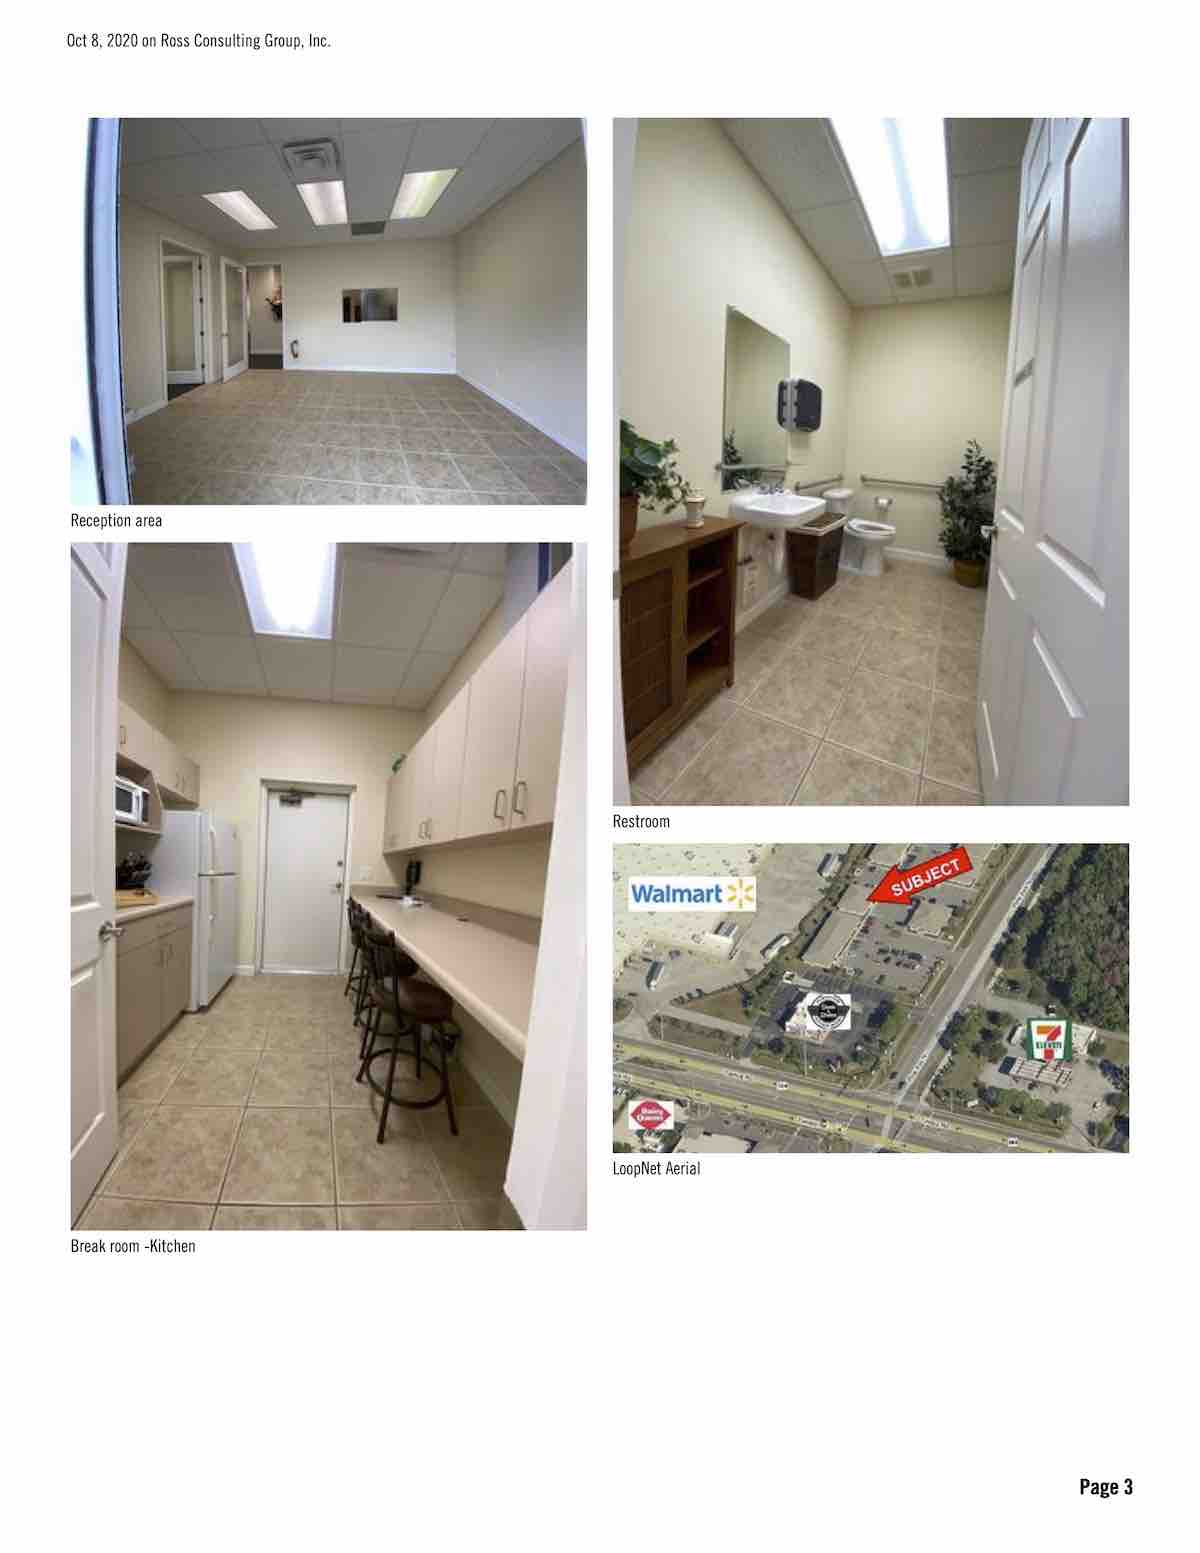 FOR LEASE - Cypress Lakes Professional Center - 140 Pine Ave N, Oldsmar, FL 34677 P3